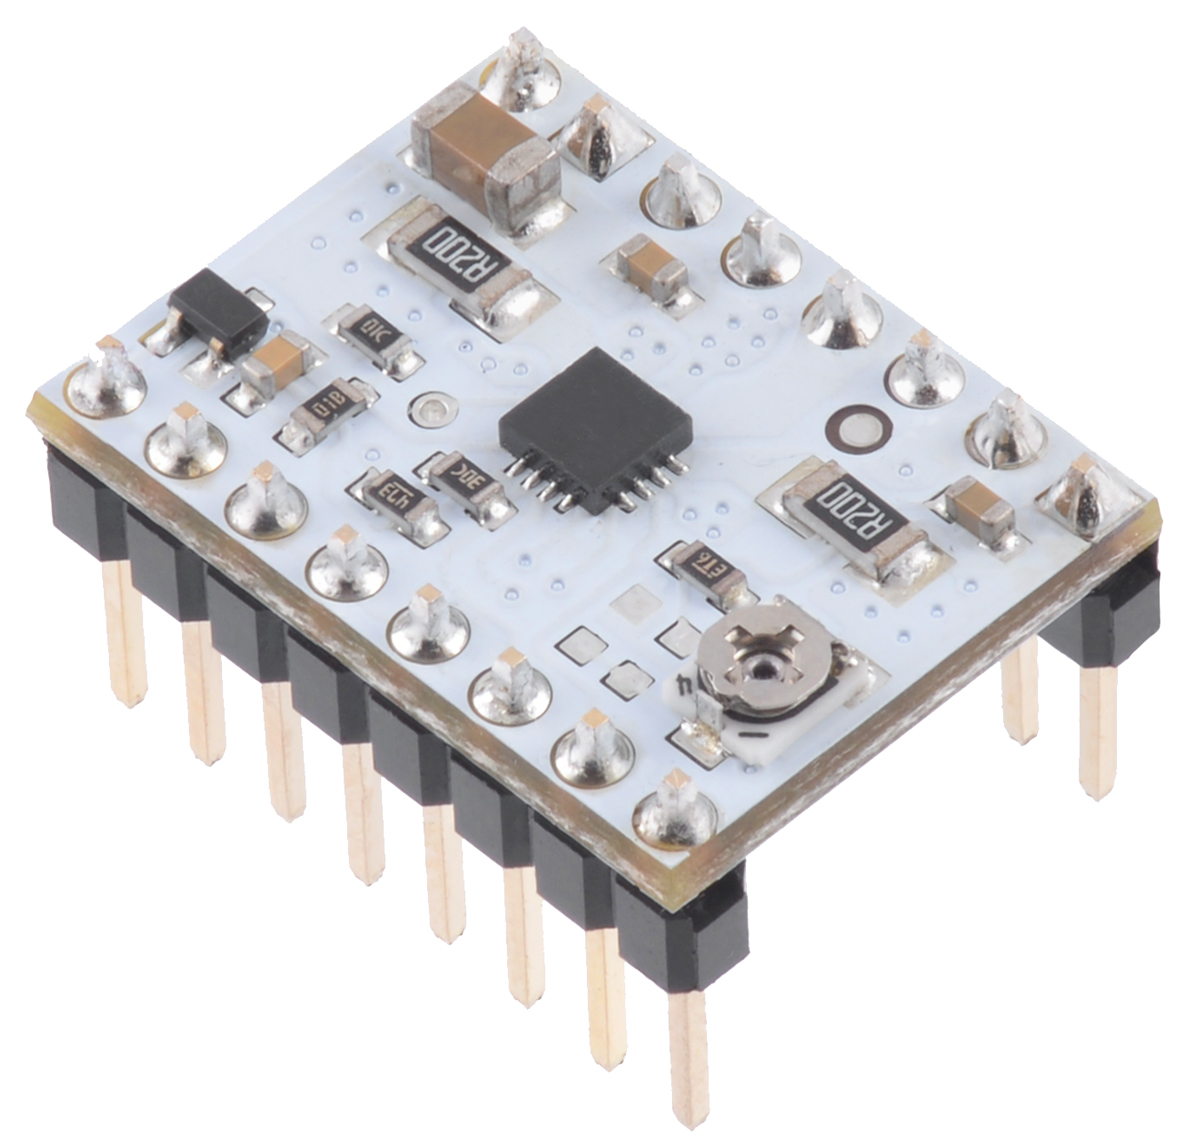 Pololu Stspin220 Low Voltage Stepper Motor Driver Carrier We Can Configure Them As A Lowvoltage Bipolar Power Supply The Headers Be Soldered In For Use With Solderless Breadboards Or 01 Female Connectors You Also Solder Your Leads And Other Connections